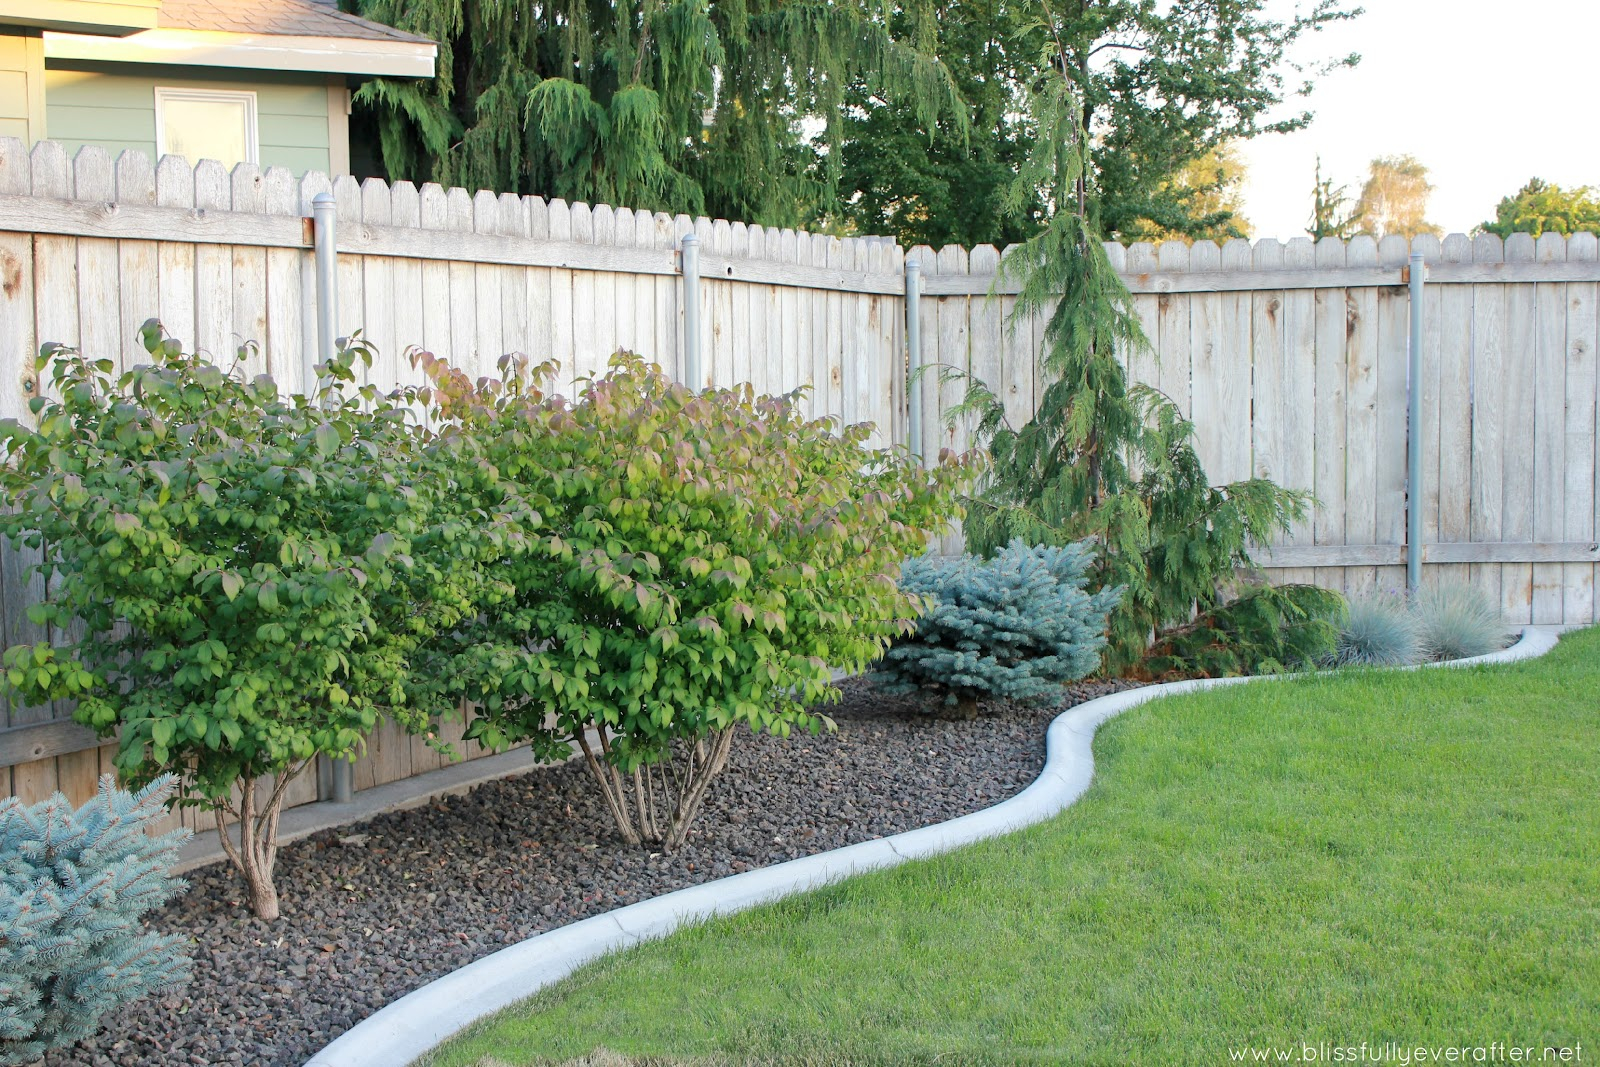 Back Yard Landscaping Ideas On A Budget Backyard Design Ideas regarding 15 Awesome Ideas How to Improve Cheap Ideas For Backyard Landscaping